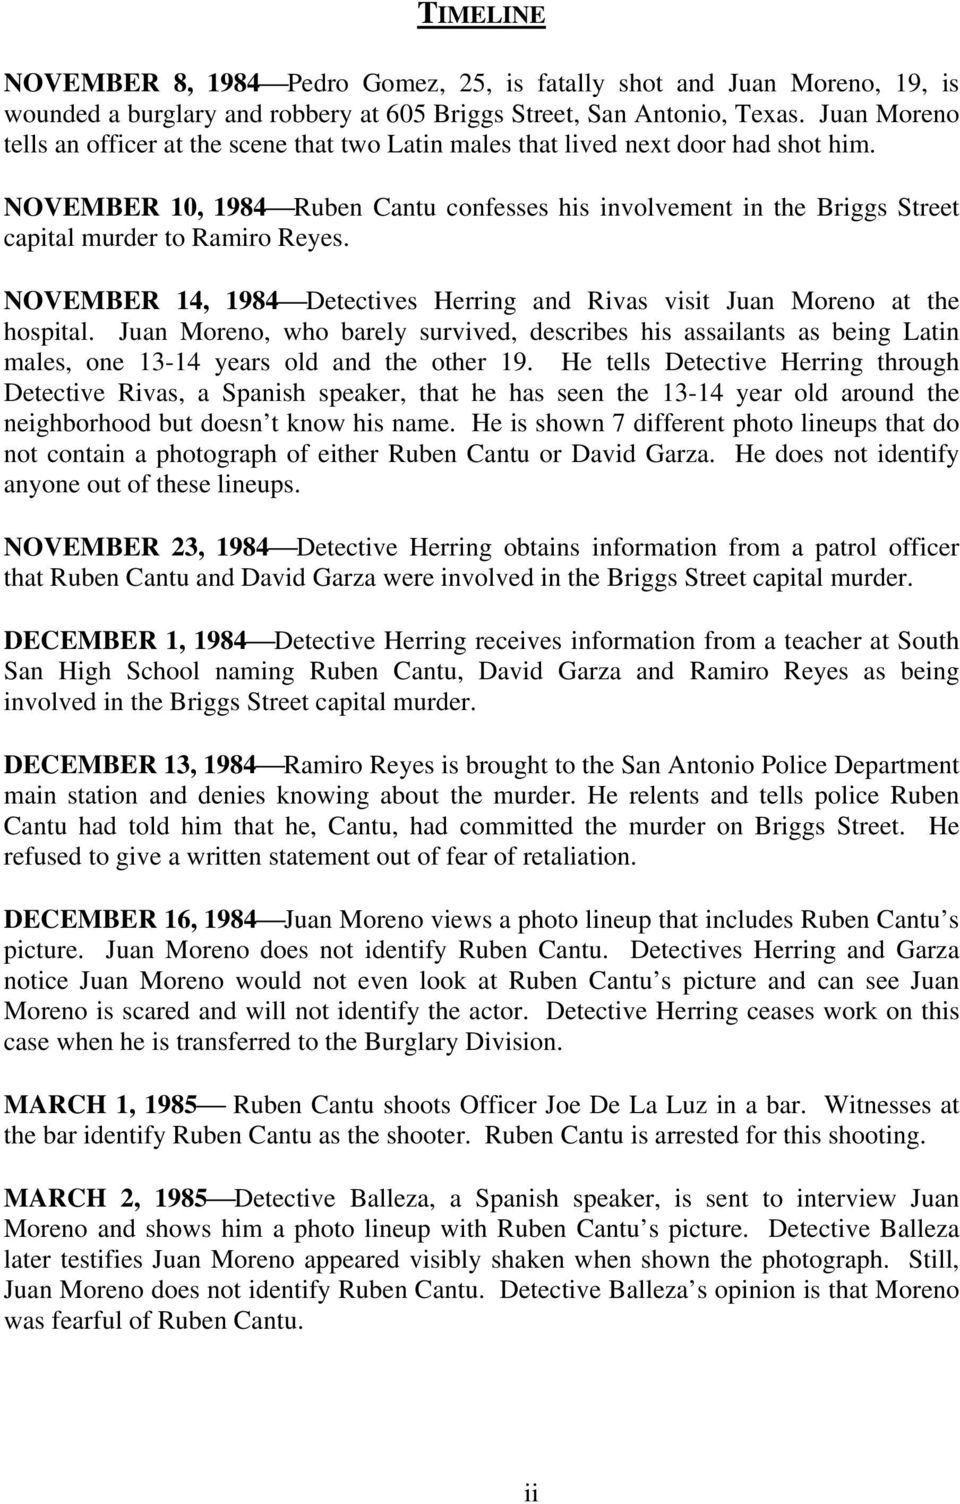 NOVEMBER 10, 1984 Ruben Cantu confesses his involvement in the Briggs Street capital murder to Ramiro Reyes. NOVEMBER 14, 1984 Detectives Herring and Rivas visit Juan Moreno at the hospital.